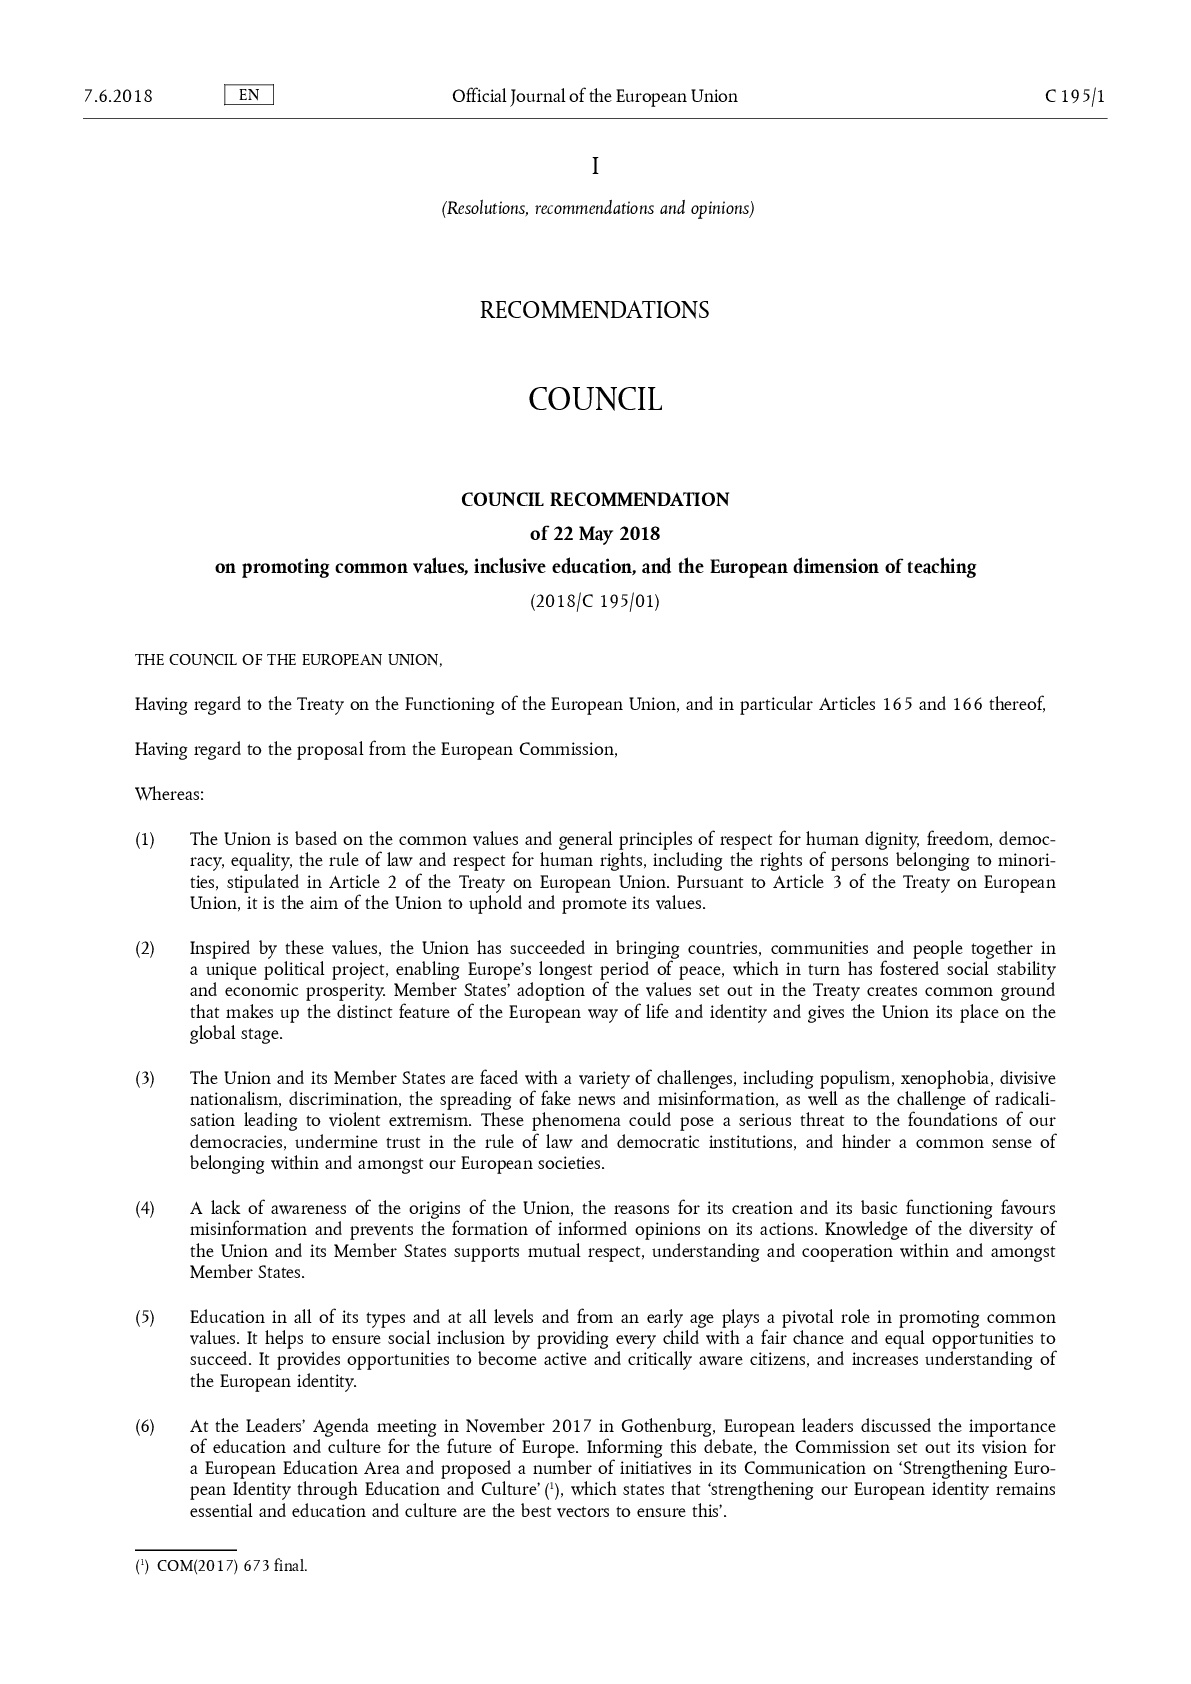 COUNCIL RECOMMENDATION of 22 May 2018 on promoting common values, inclusive education, and the European dimension of teaching (2018/C 195/01)